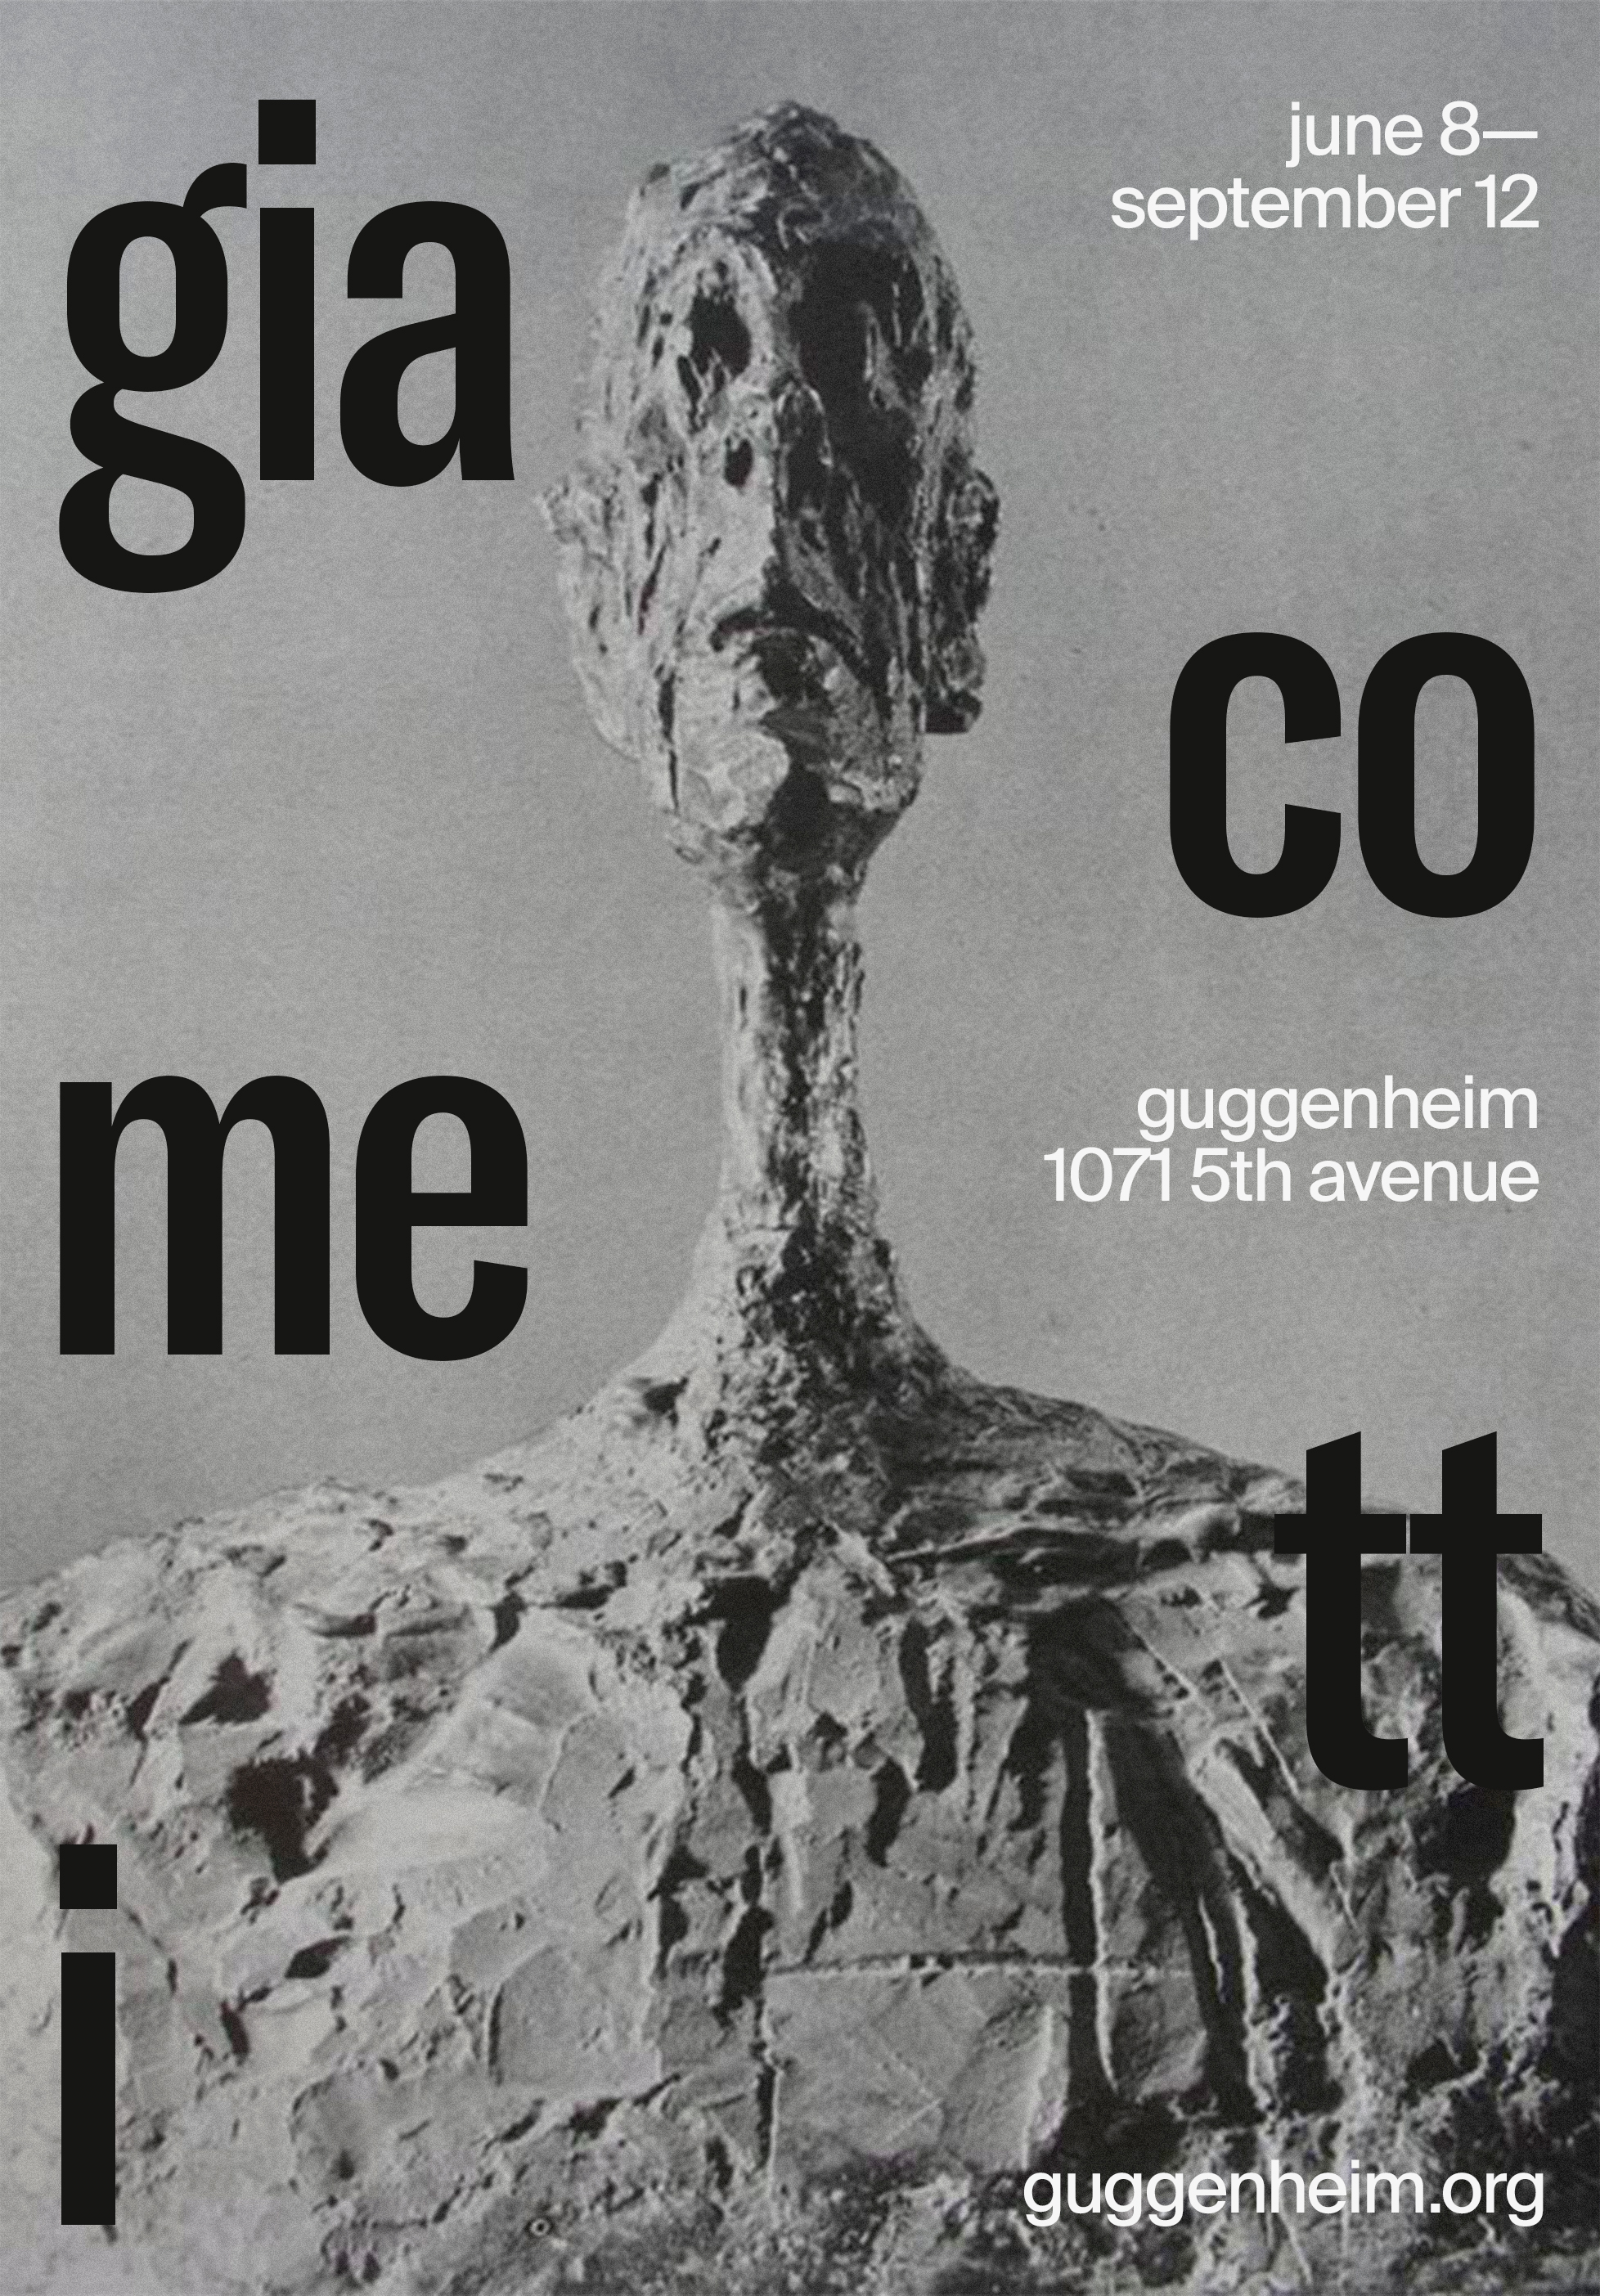 giacometti poster updated.jpg